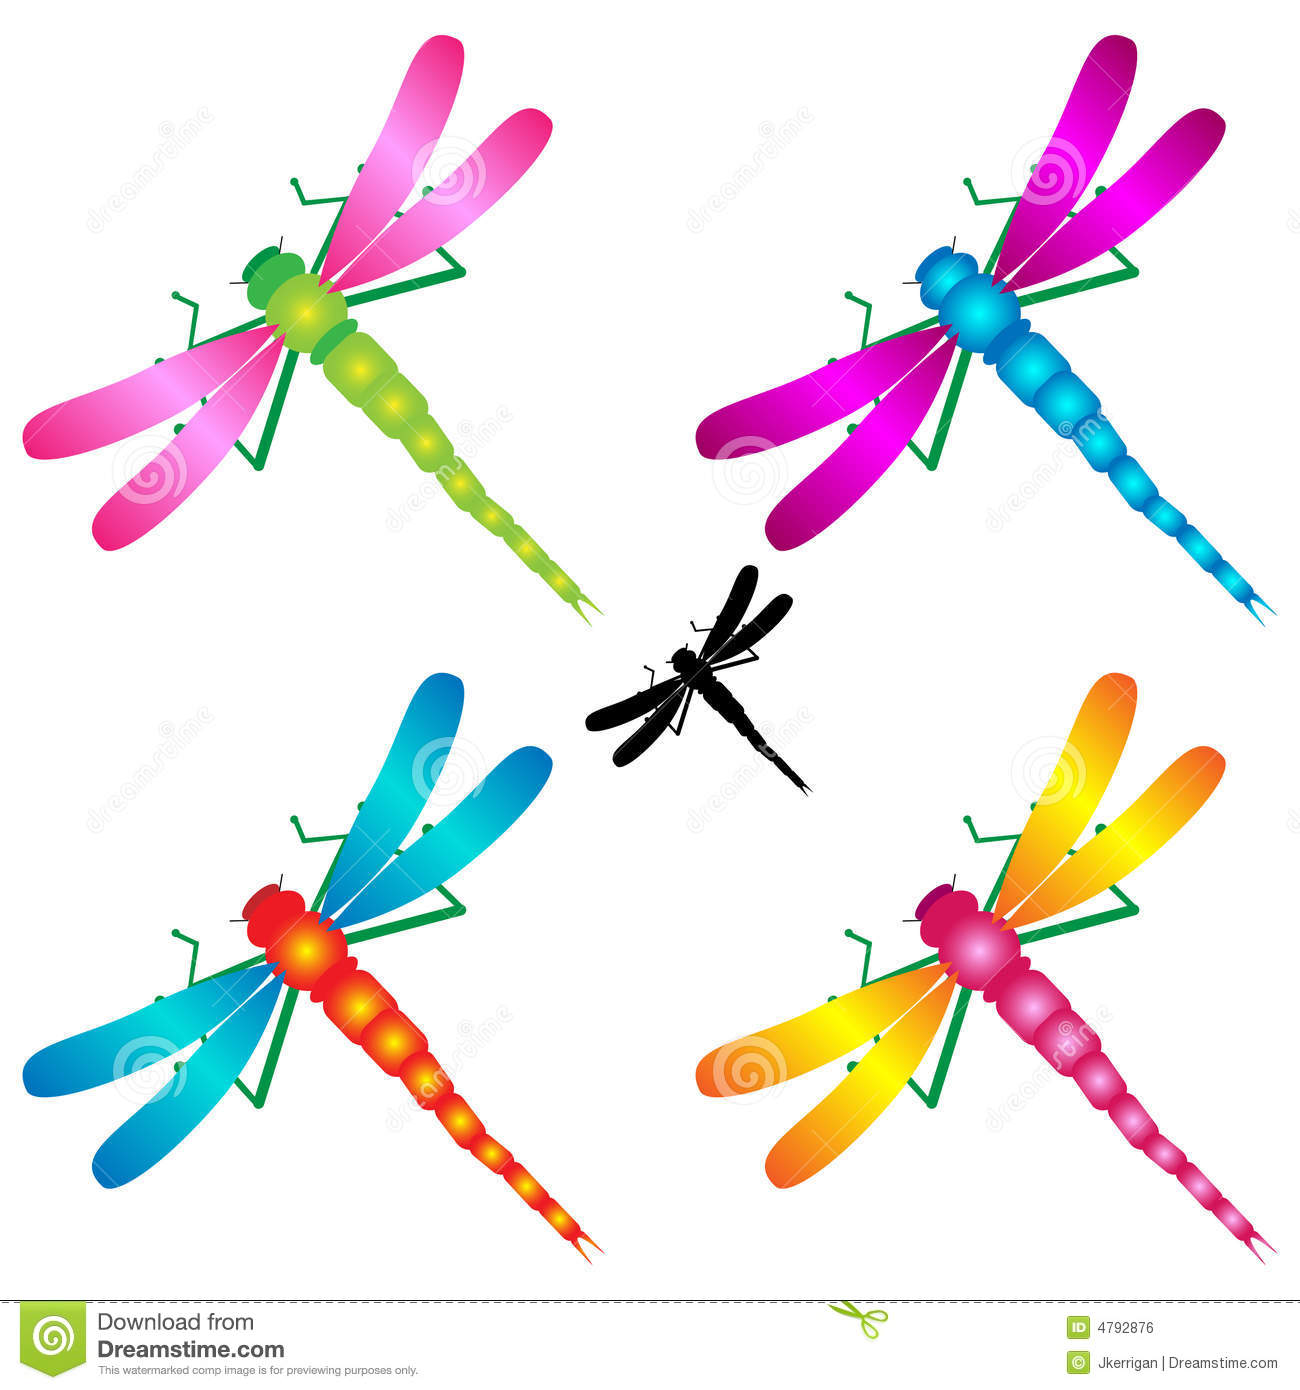 Dragonflies stock vector. Illustration of shape, stylized ...